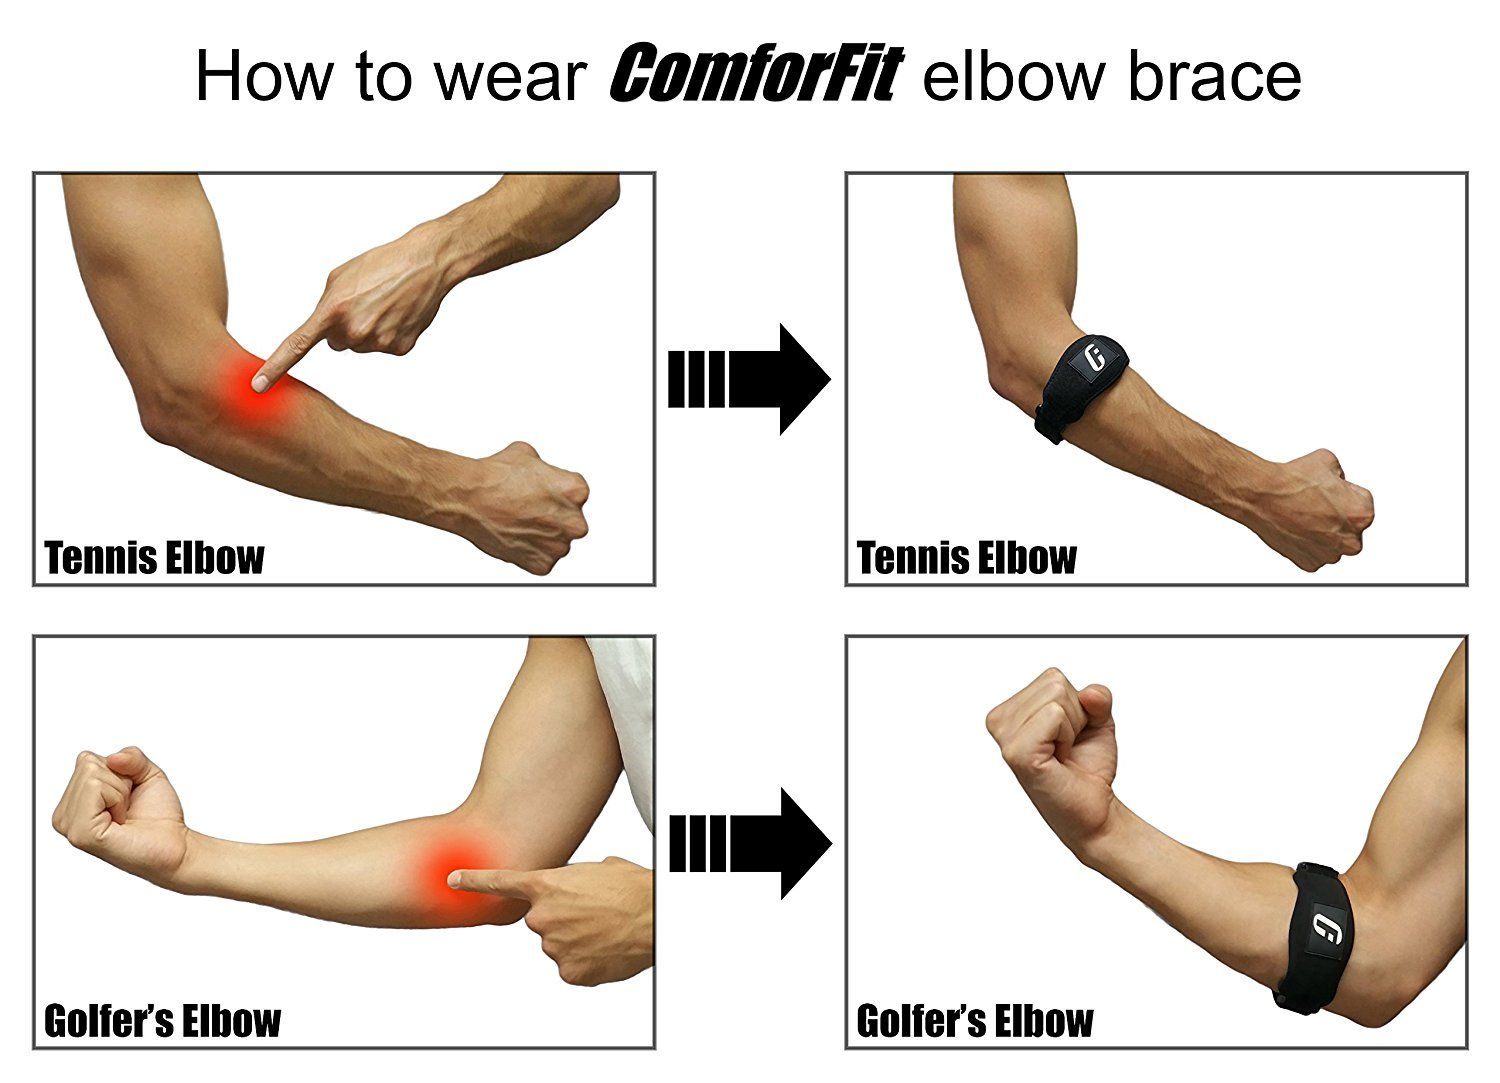 Counterforce brace for lateral or medial elbow